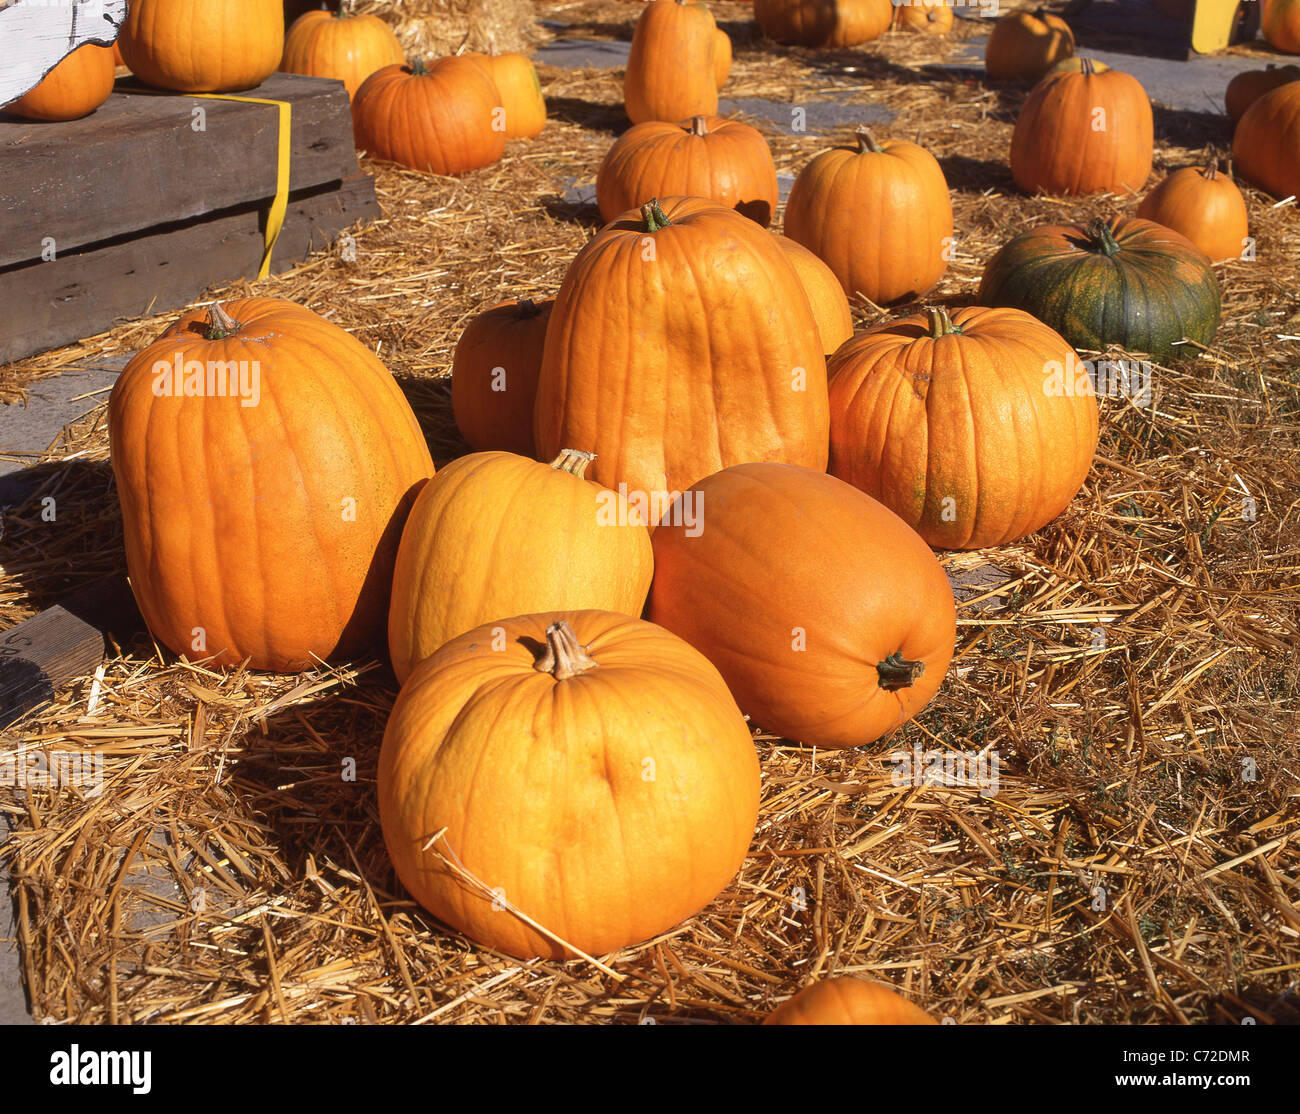 Halloween pumpkins by roadside, Massachusetts, United States of America - Stock Image